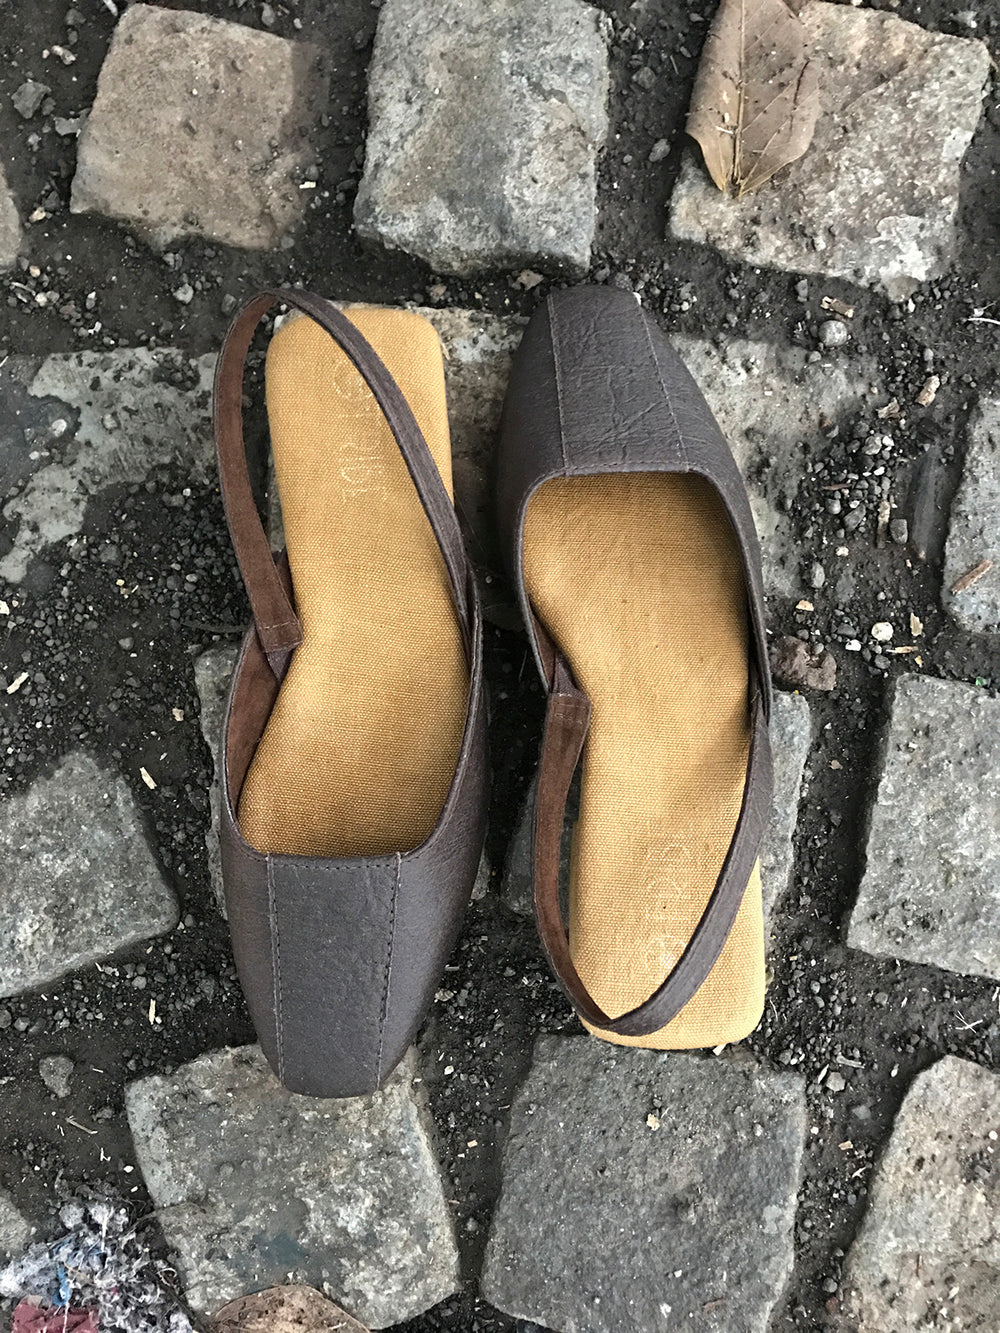 Pinatex Square Toe Shoes